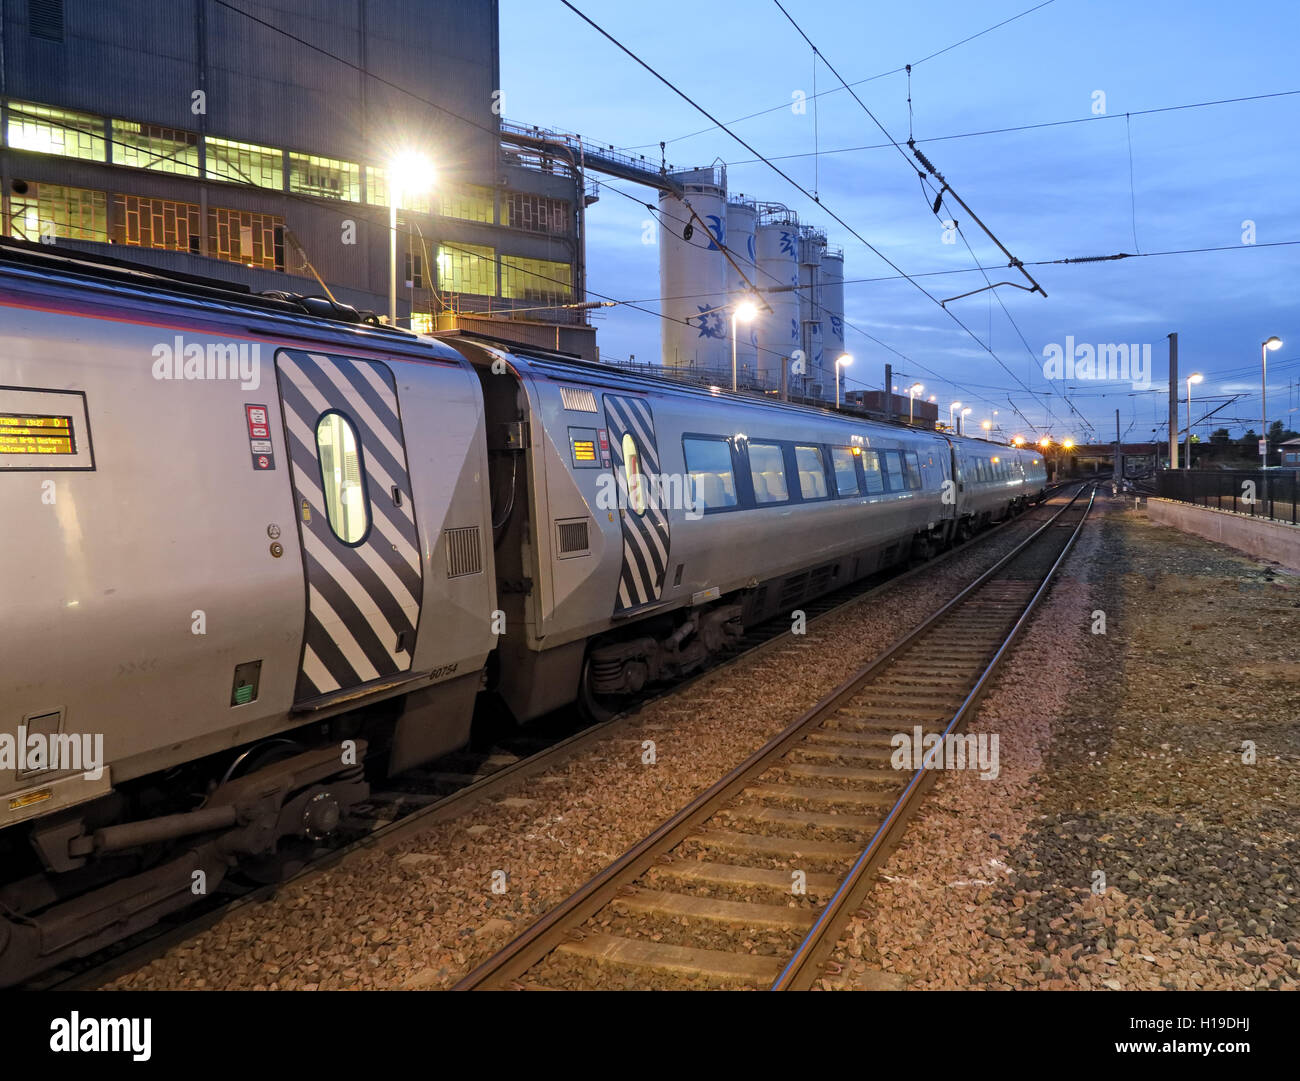 WCML Virgin Pendolino electric train,at Warrington bank Quay railway station, Northbound, Cheshire, England, UK - Stock Image